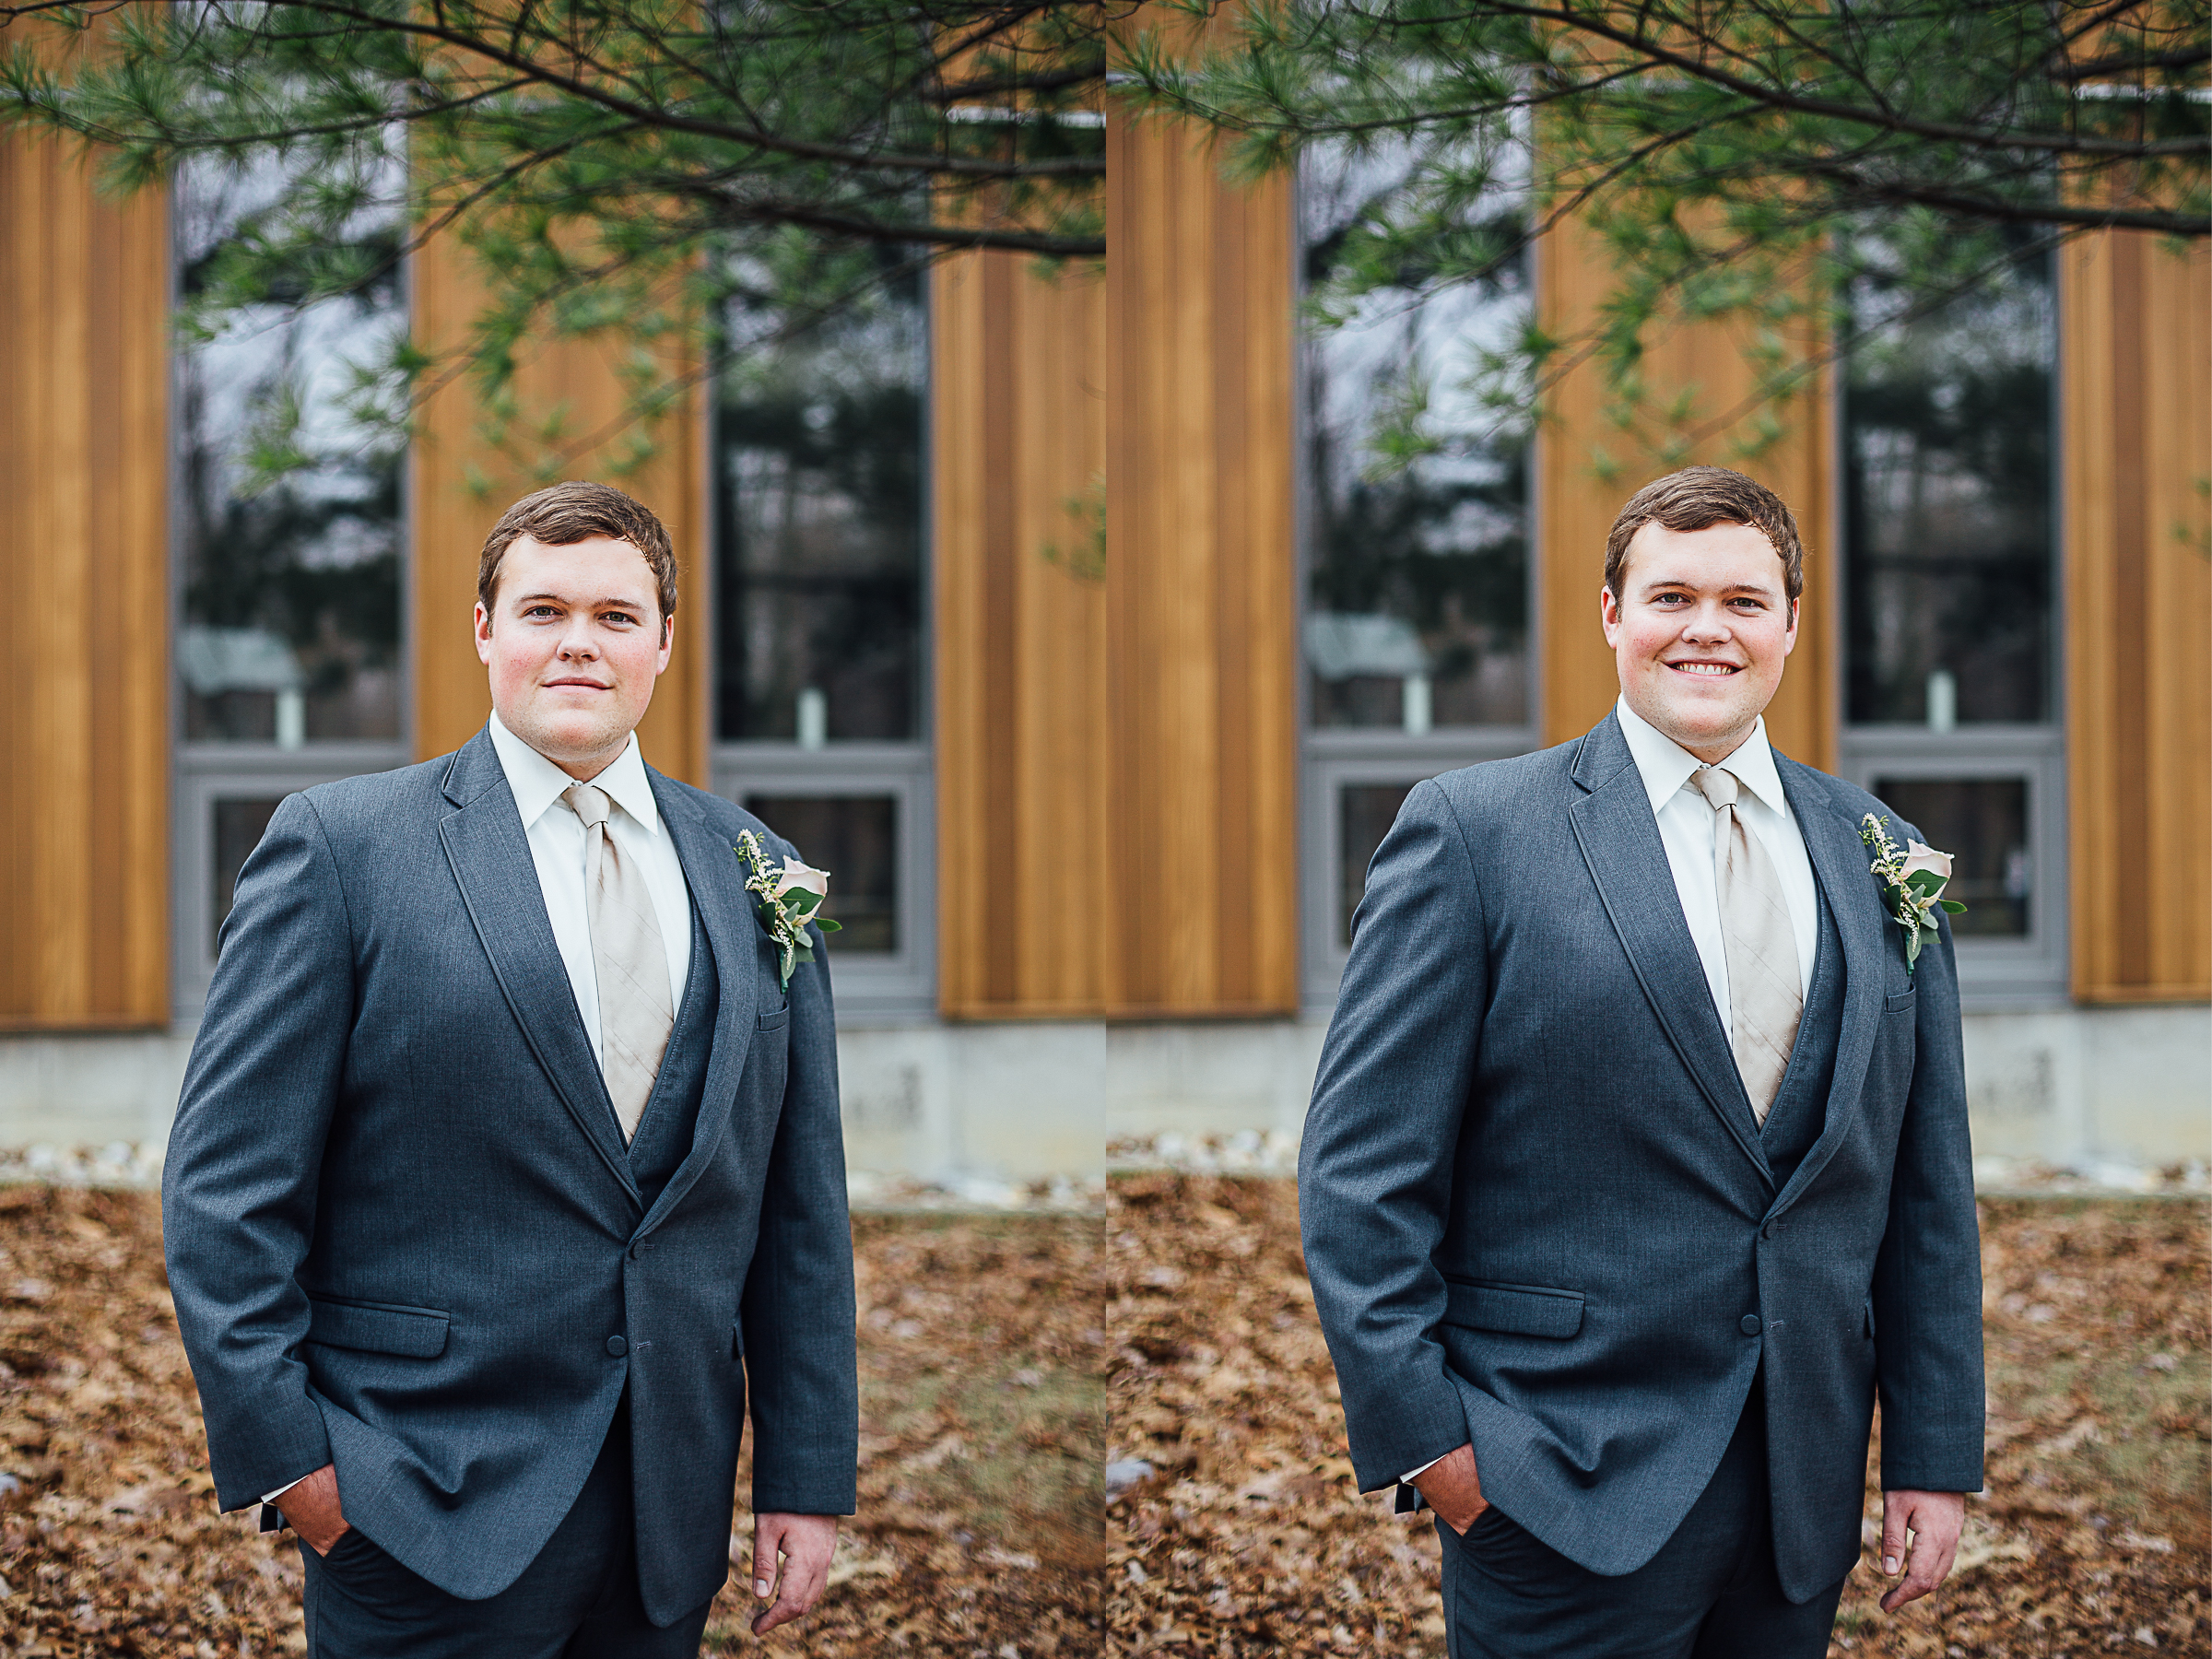 Handsome Groom on his wedding day by Corrie Mick Photography.jpg